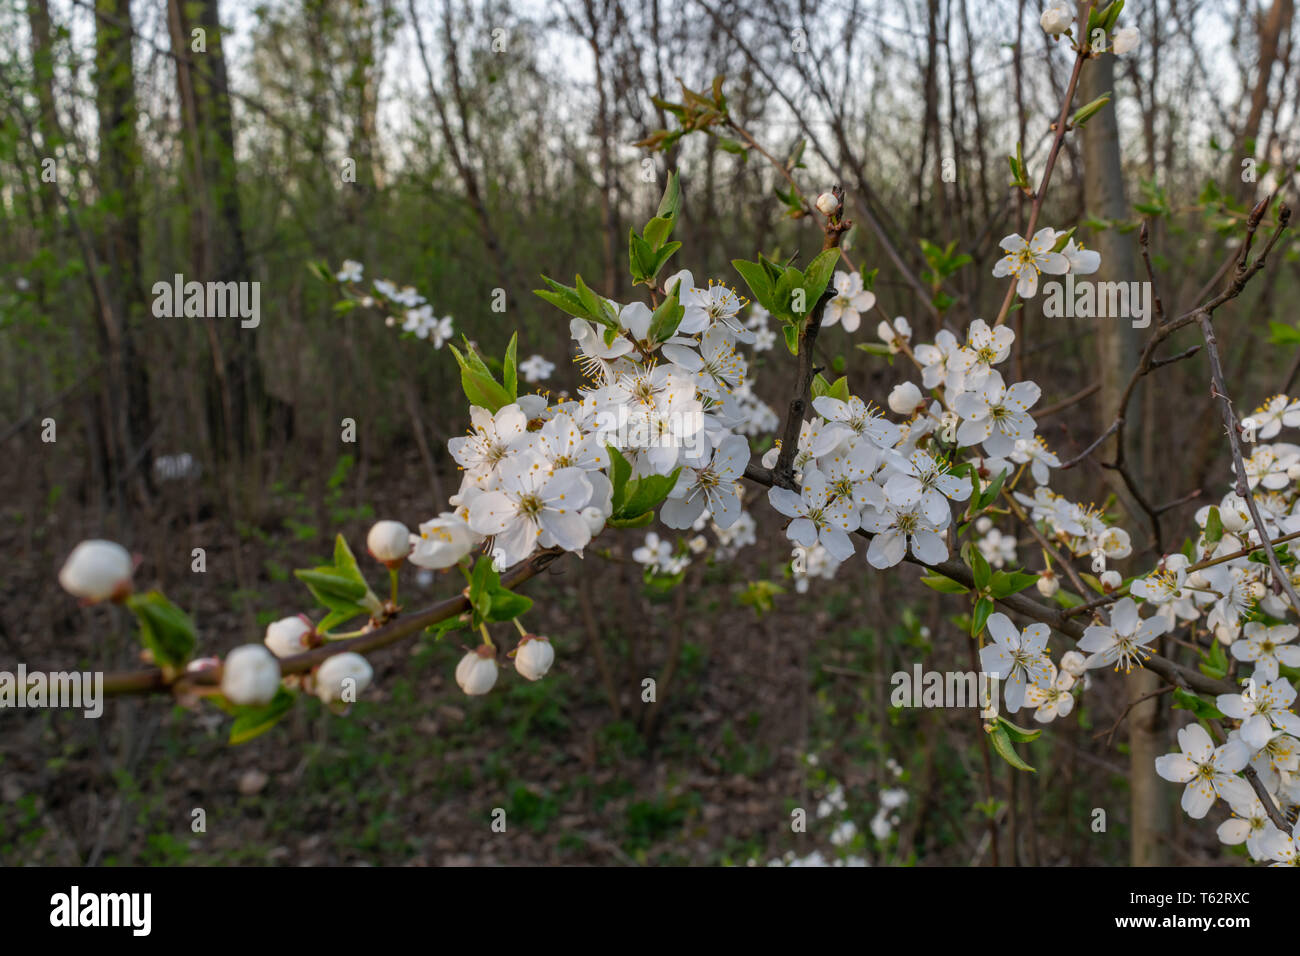 Flowering Flowering Trees In Spring White Flowers Grow In The